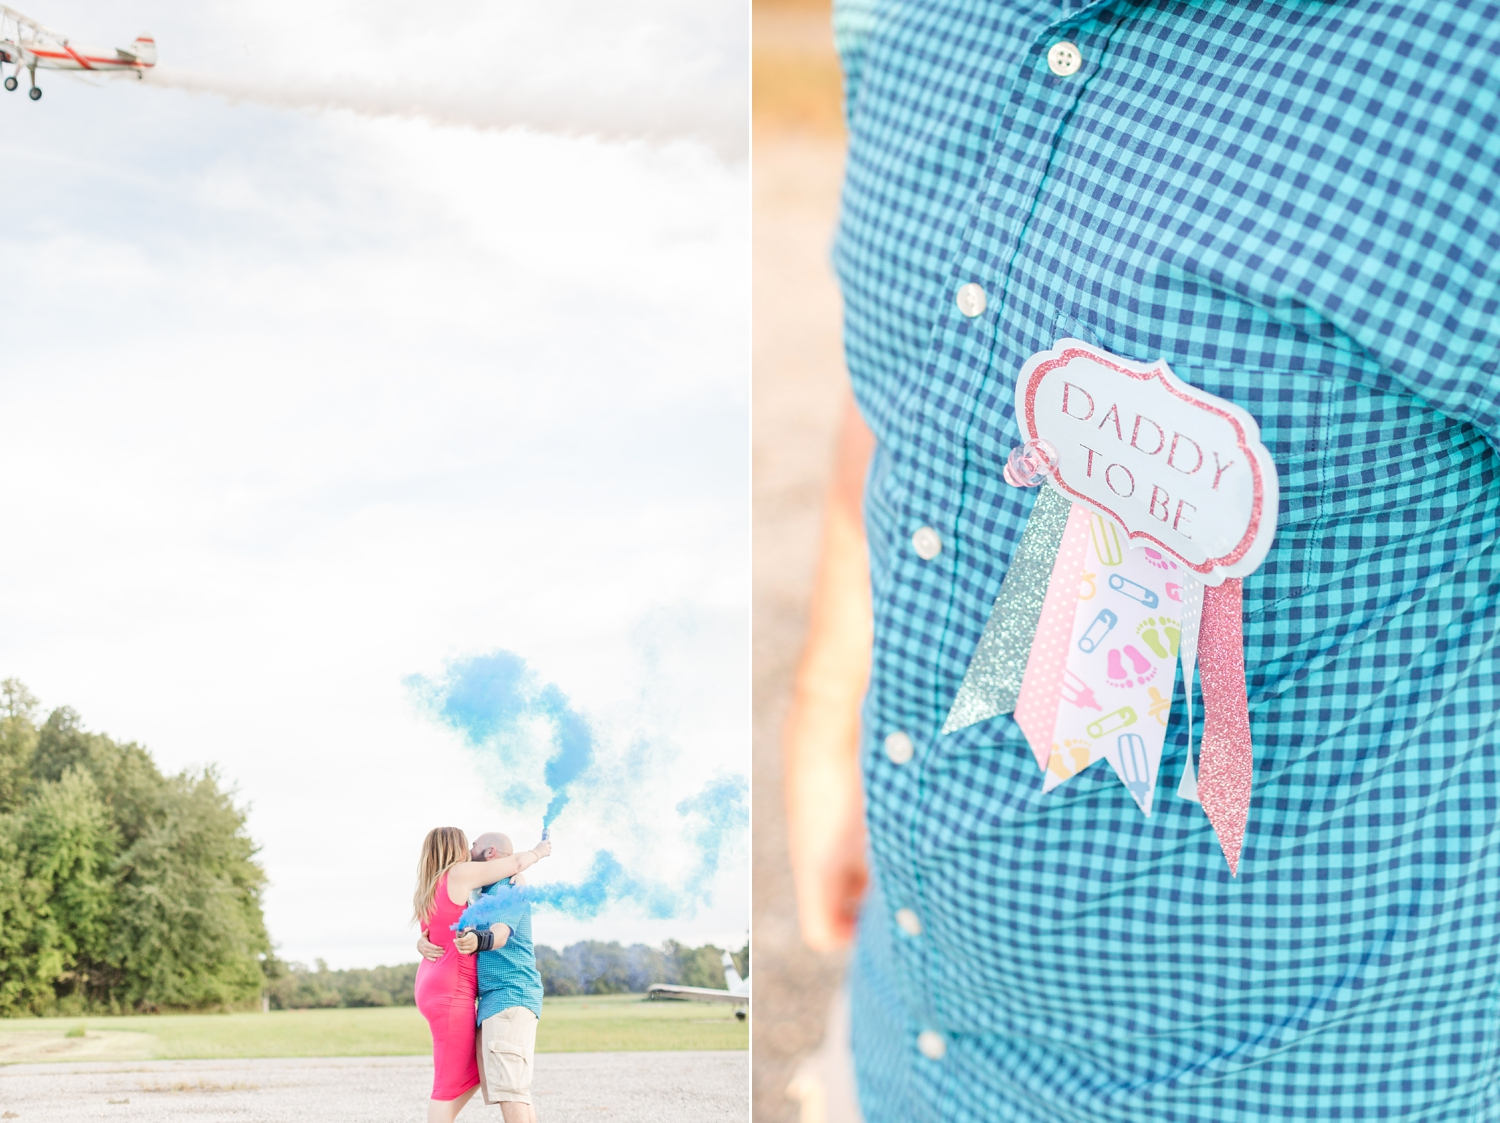 Calvert Gender Reveal-48_Baltimore-Maryland-Gender-Reveal-Maternity-photographer-anna-grace-photography-photo.jpg